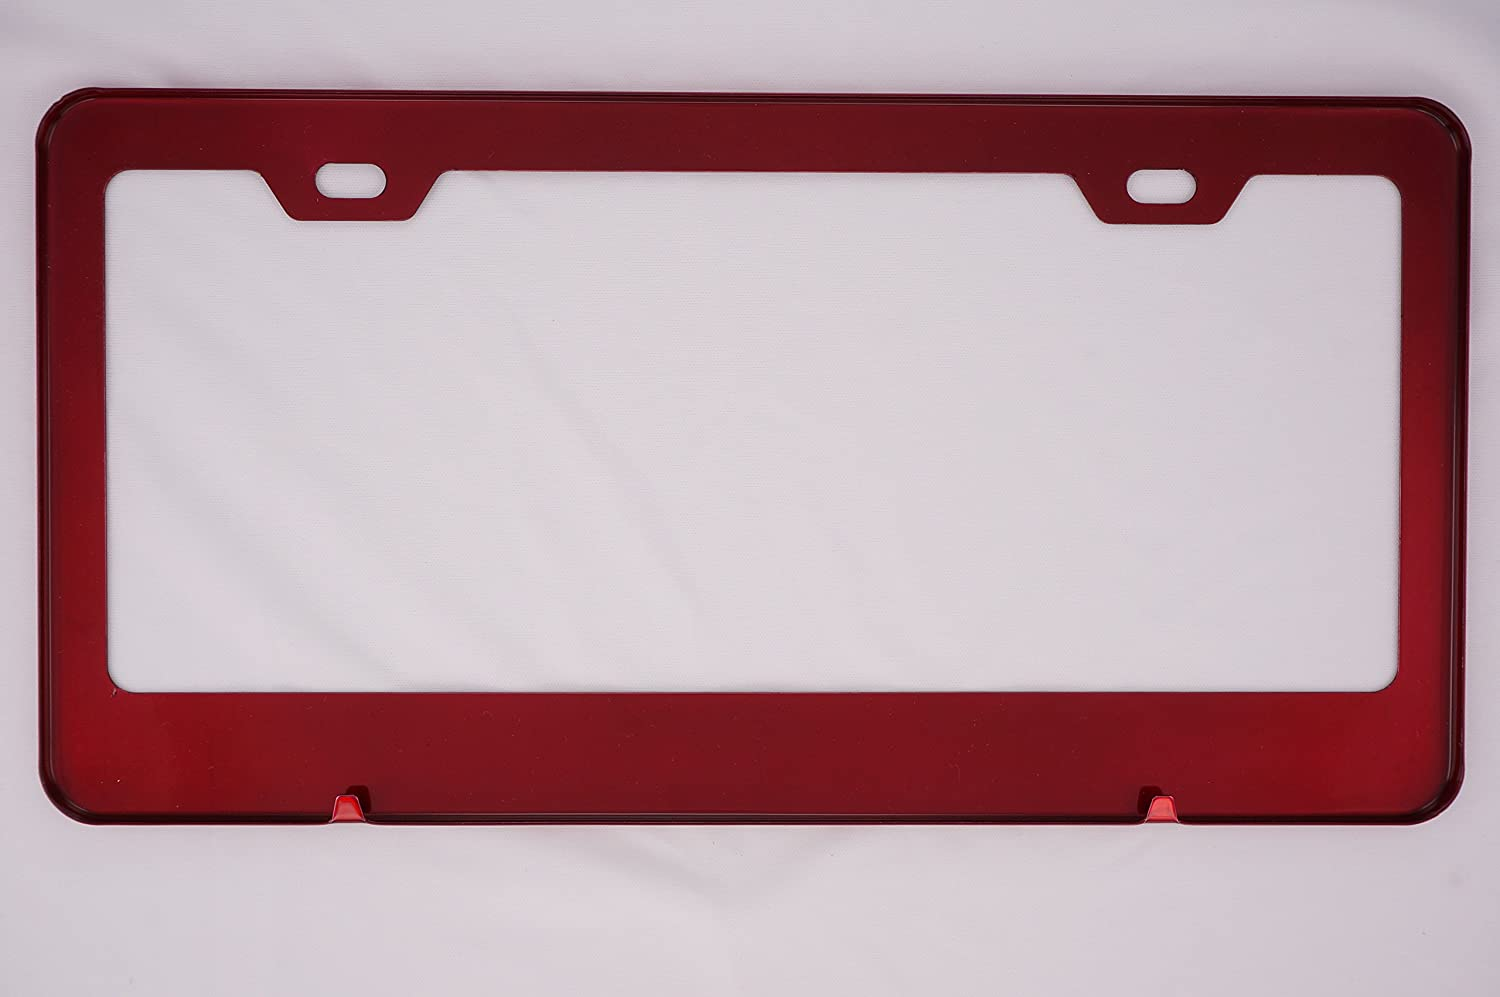 Hellcat Stainless Steel Red License Plate Frame fit SRT Powder Coasted Color